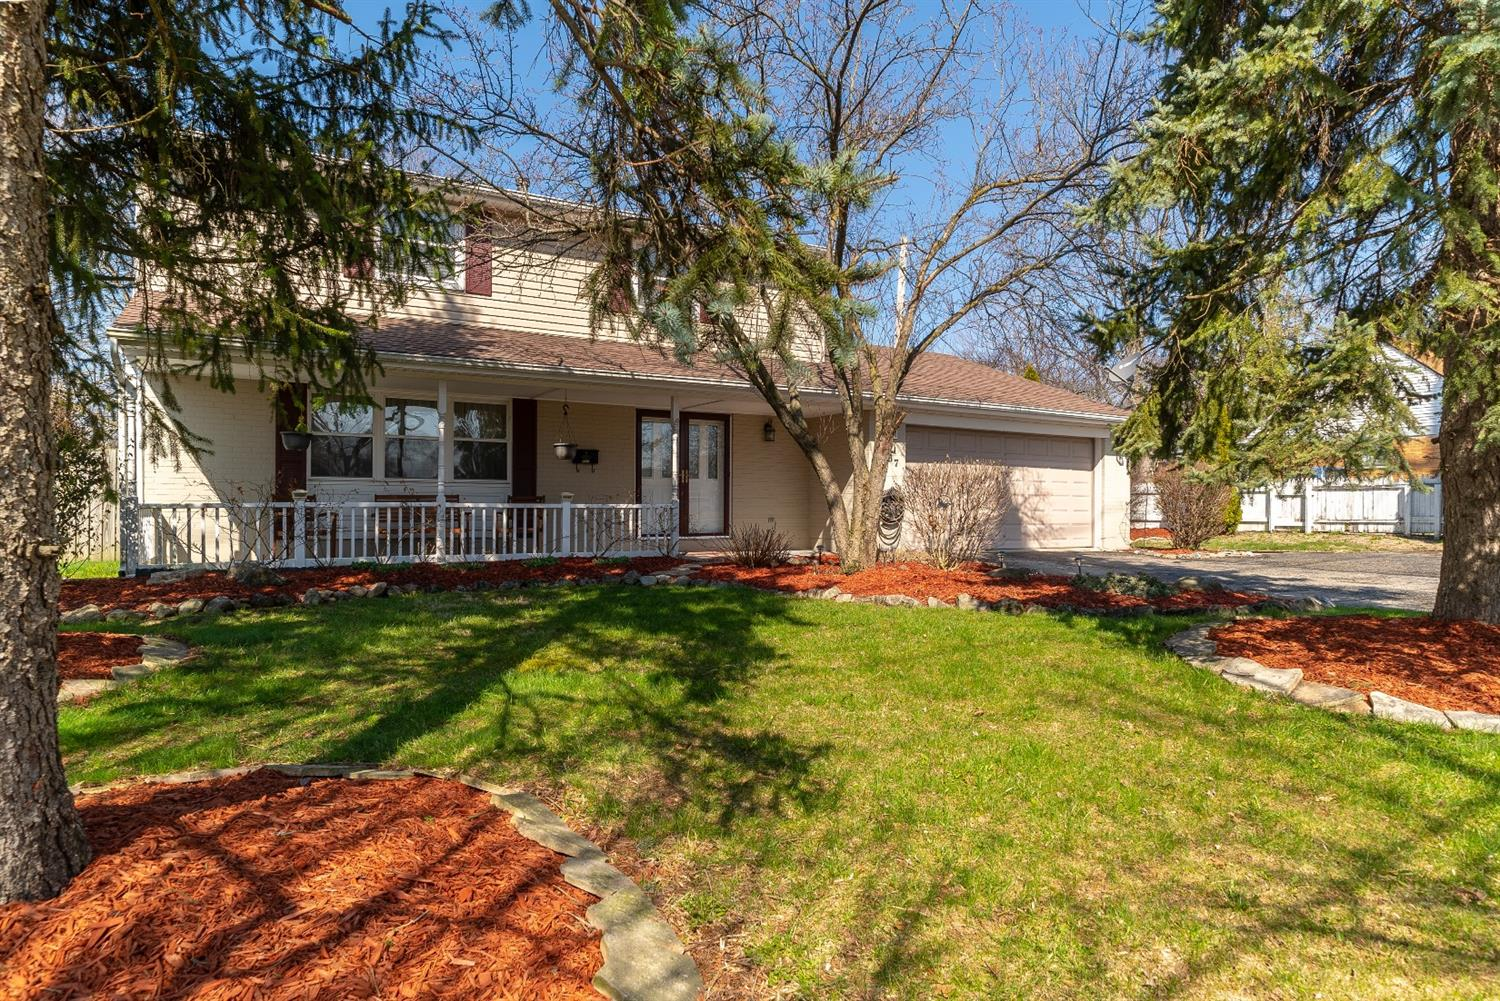 4337 marshall rd montgomery co oh 45429 listing details for Marshalls cincinnati oh